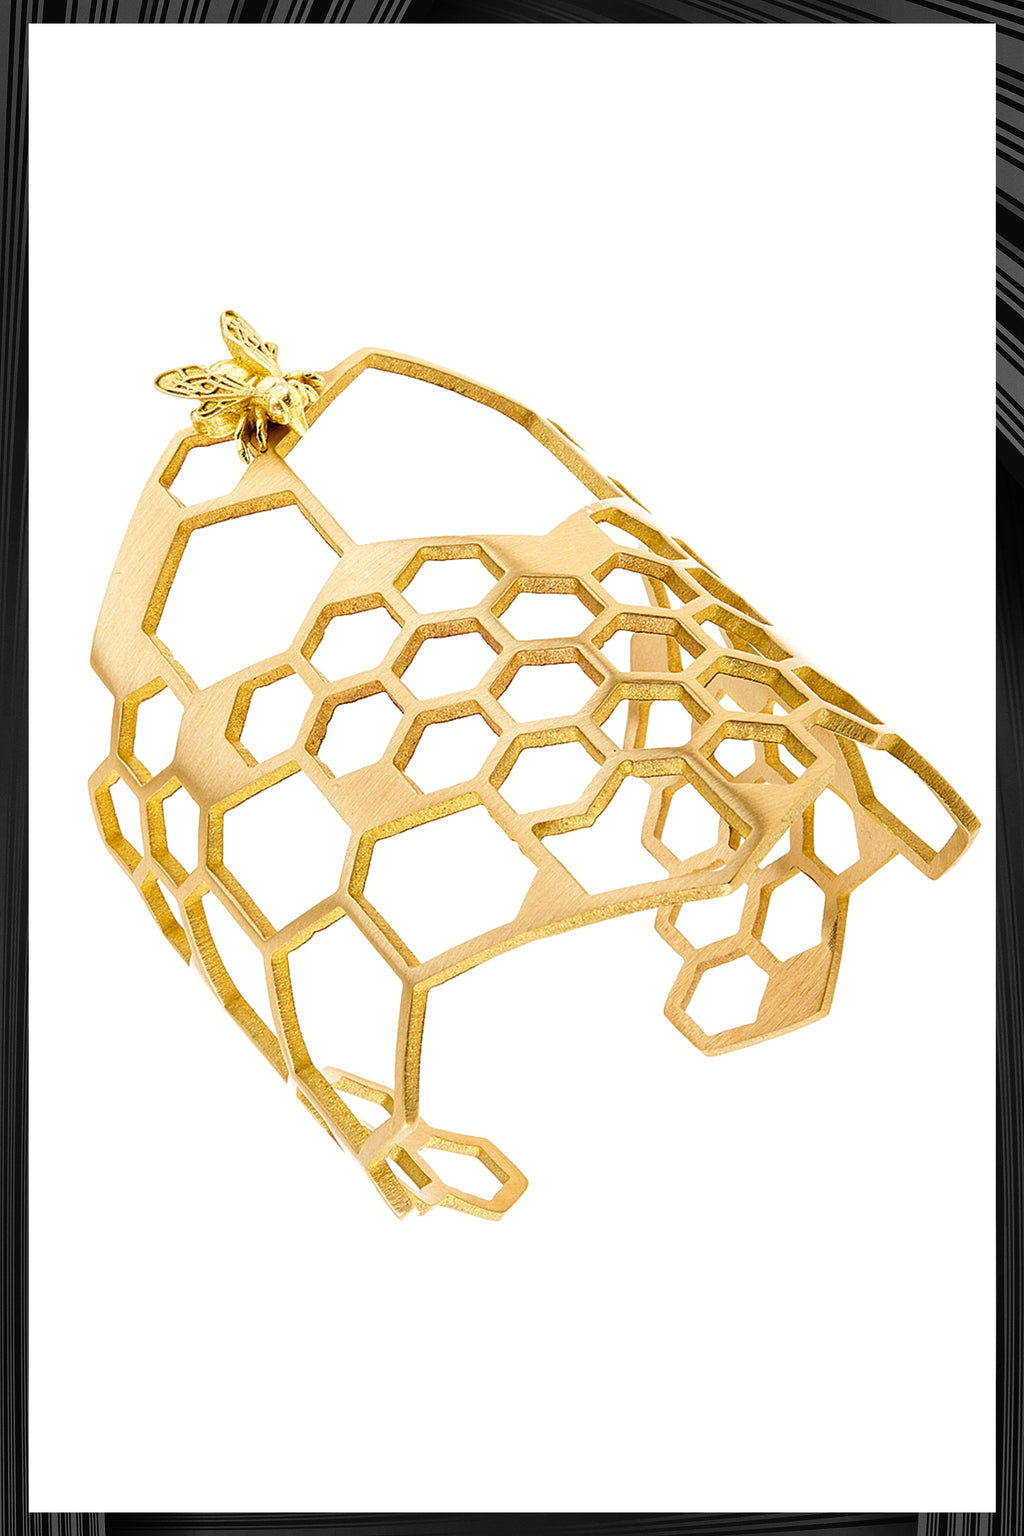 Honey Comb Cuff | Free Delivery - 1-2 Weeks Shipping